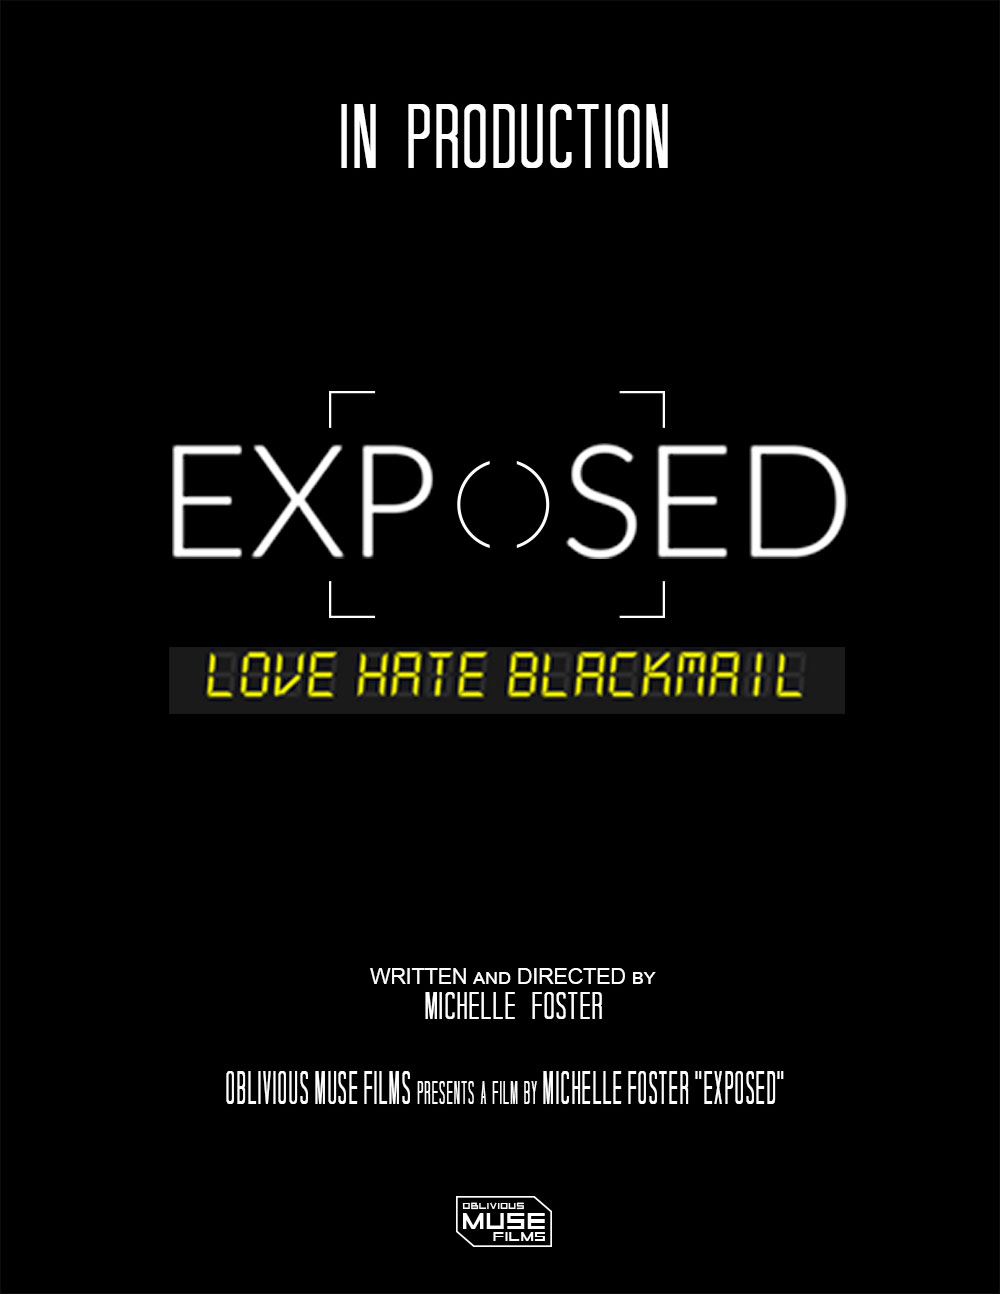 exposed-large